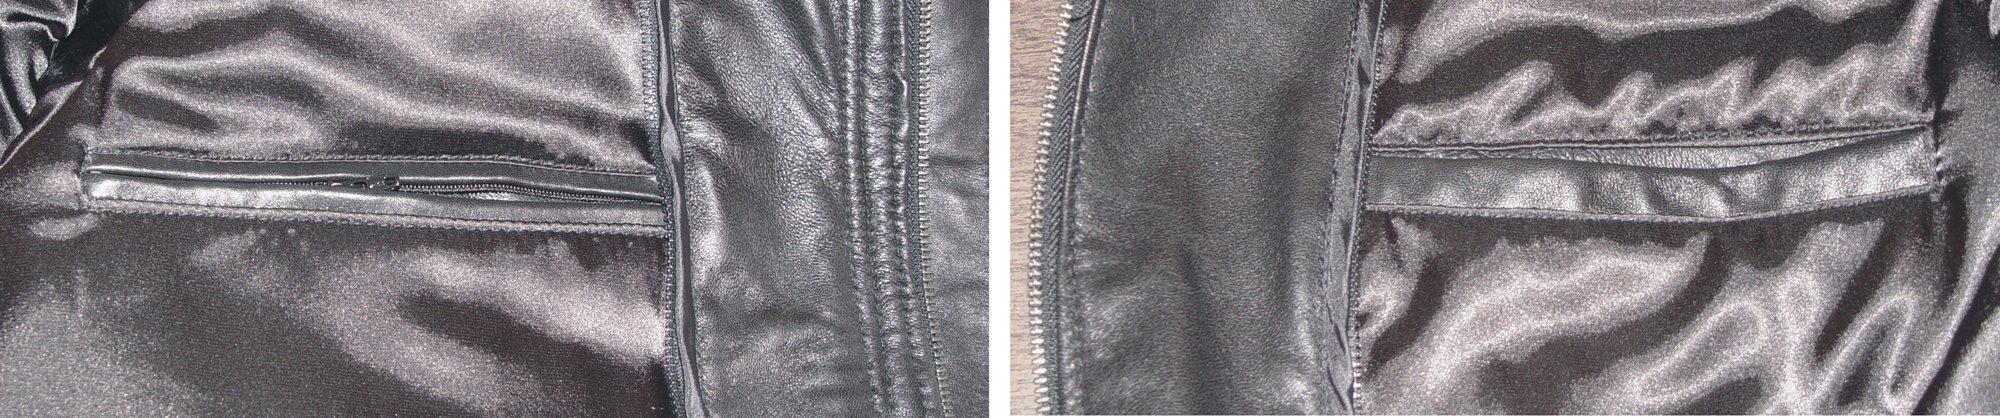 Nettailor 1095 Real Lamb Fine Leather Fitted Sports Blazer Pea Coat by NETTAILOR (Image #6)